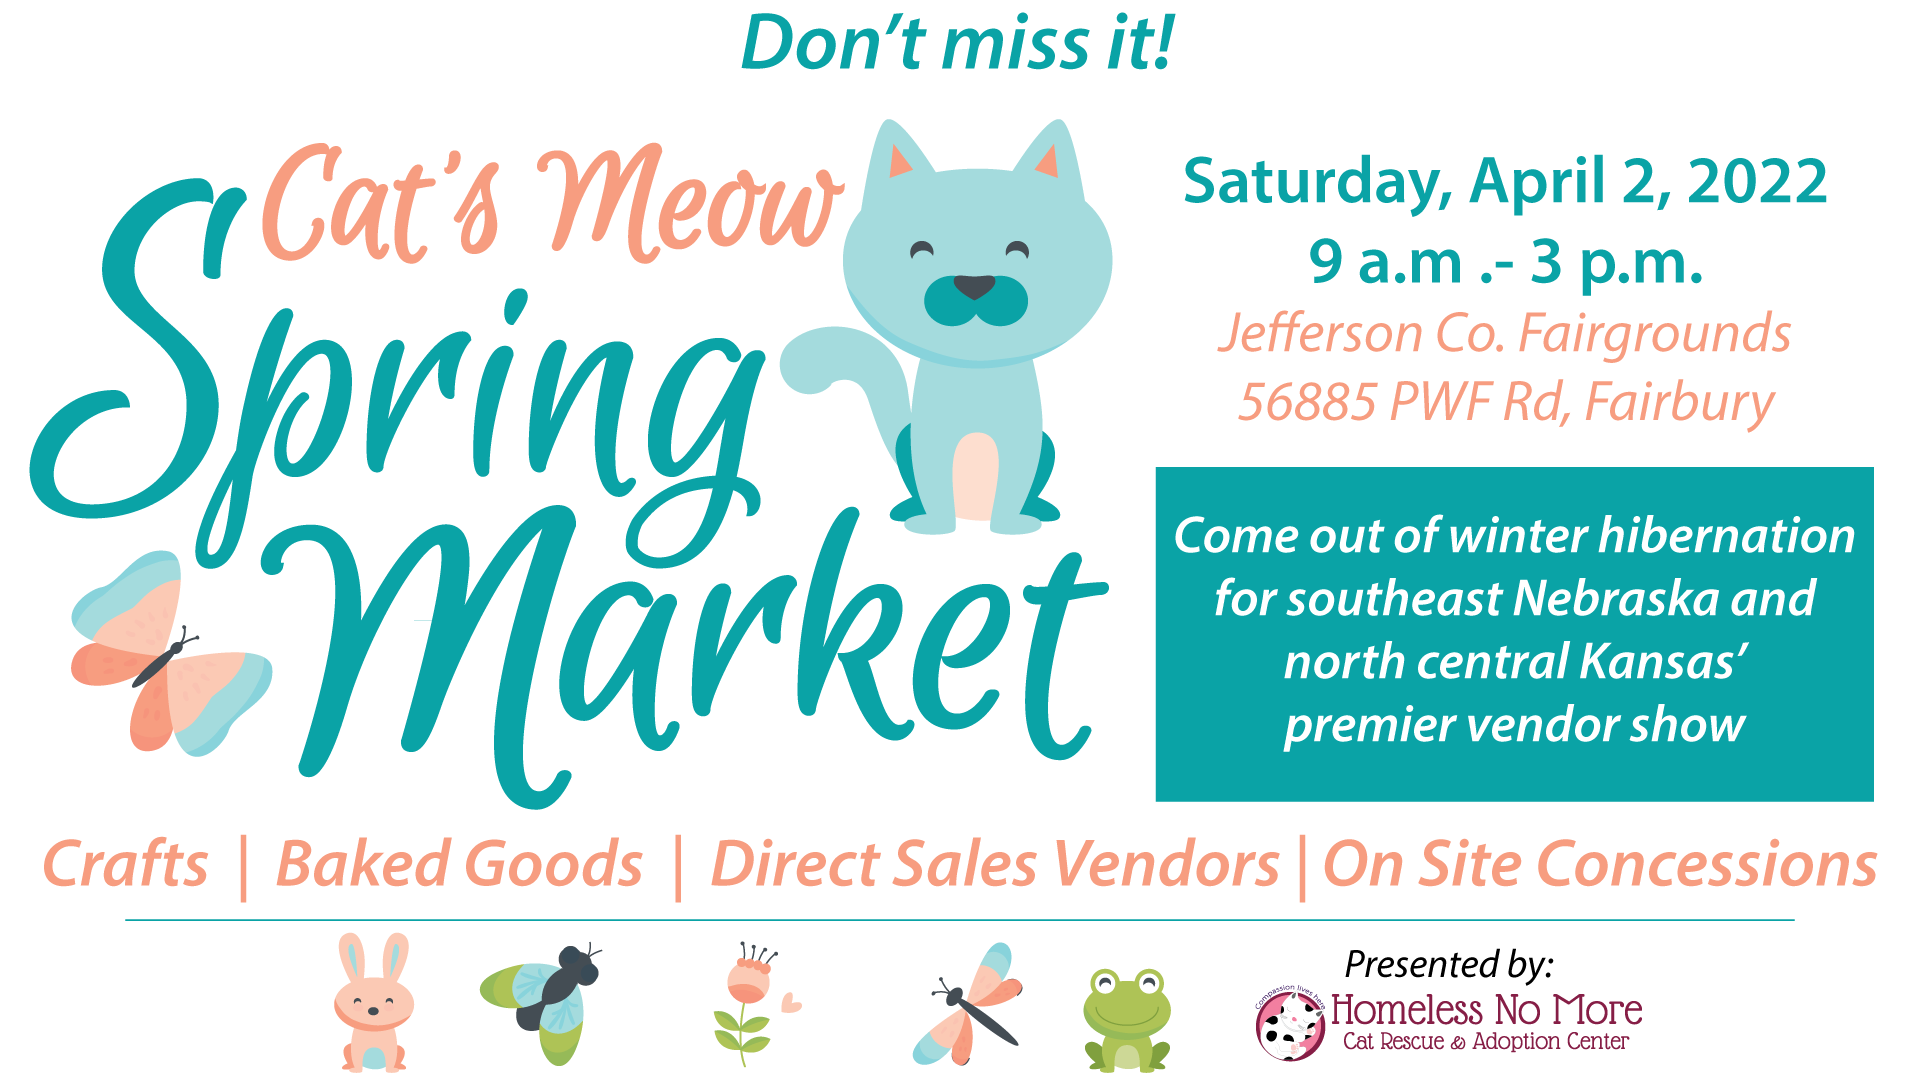 Don't Miss Cat's Meow Spring Market on Sat. April 2, 2022 at the Jefferson County Fairgrounds in Fairbury, NE